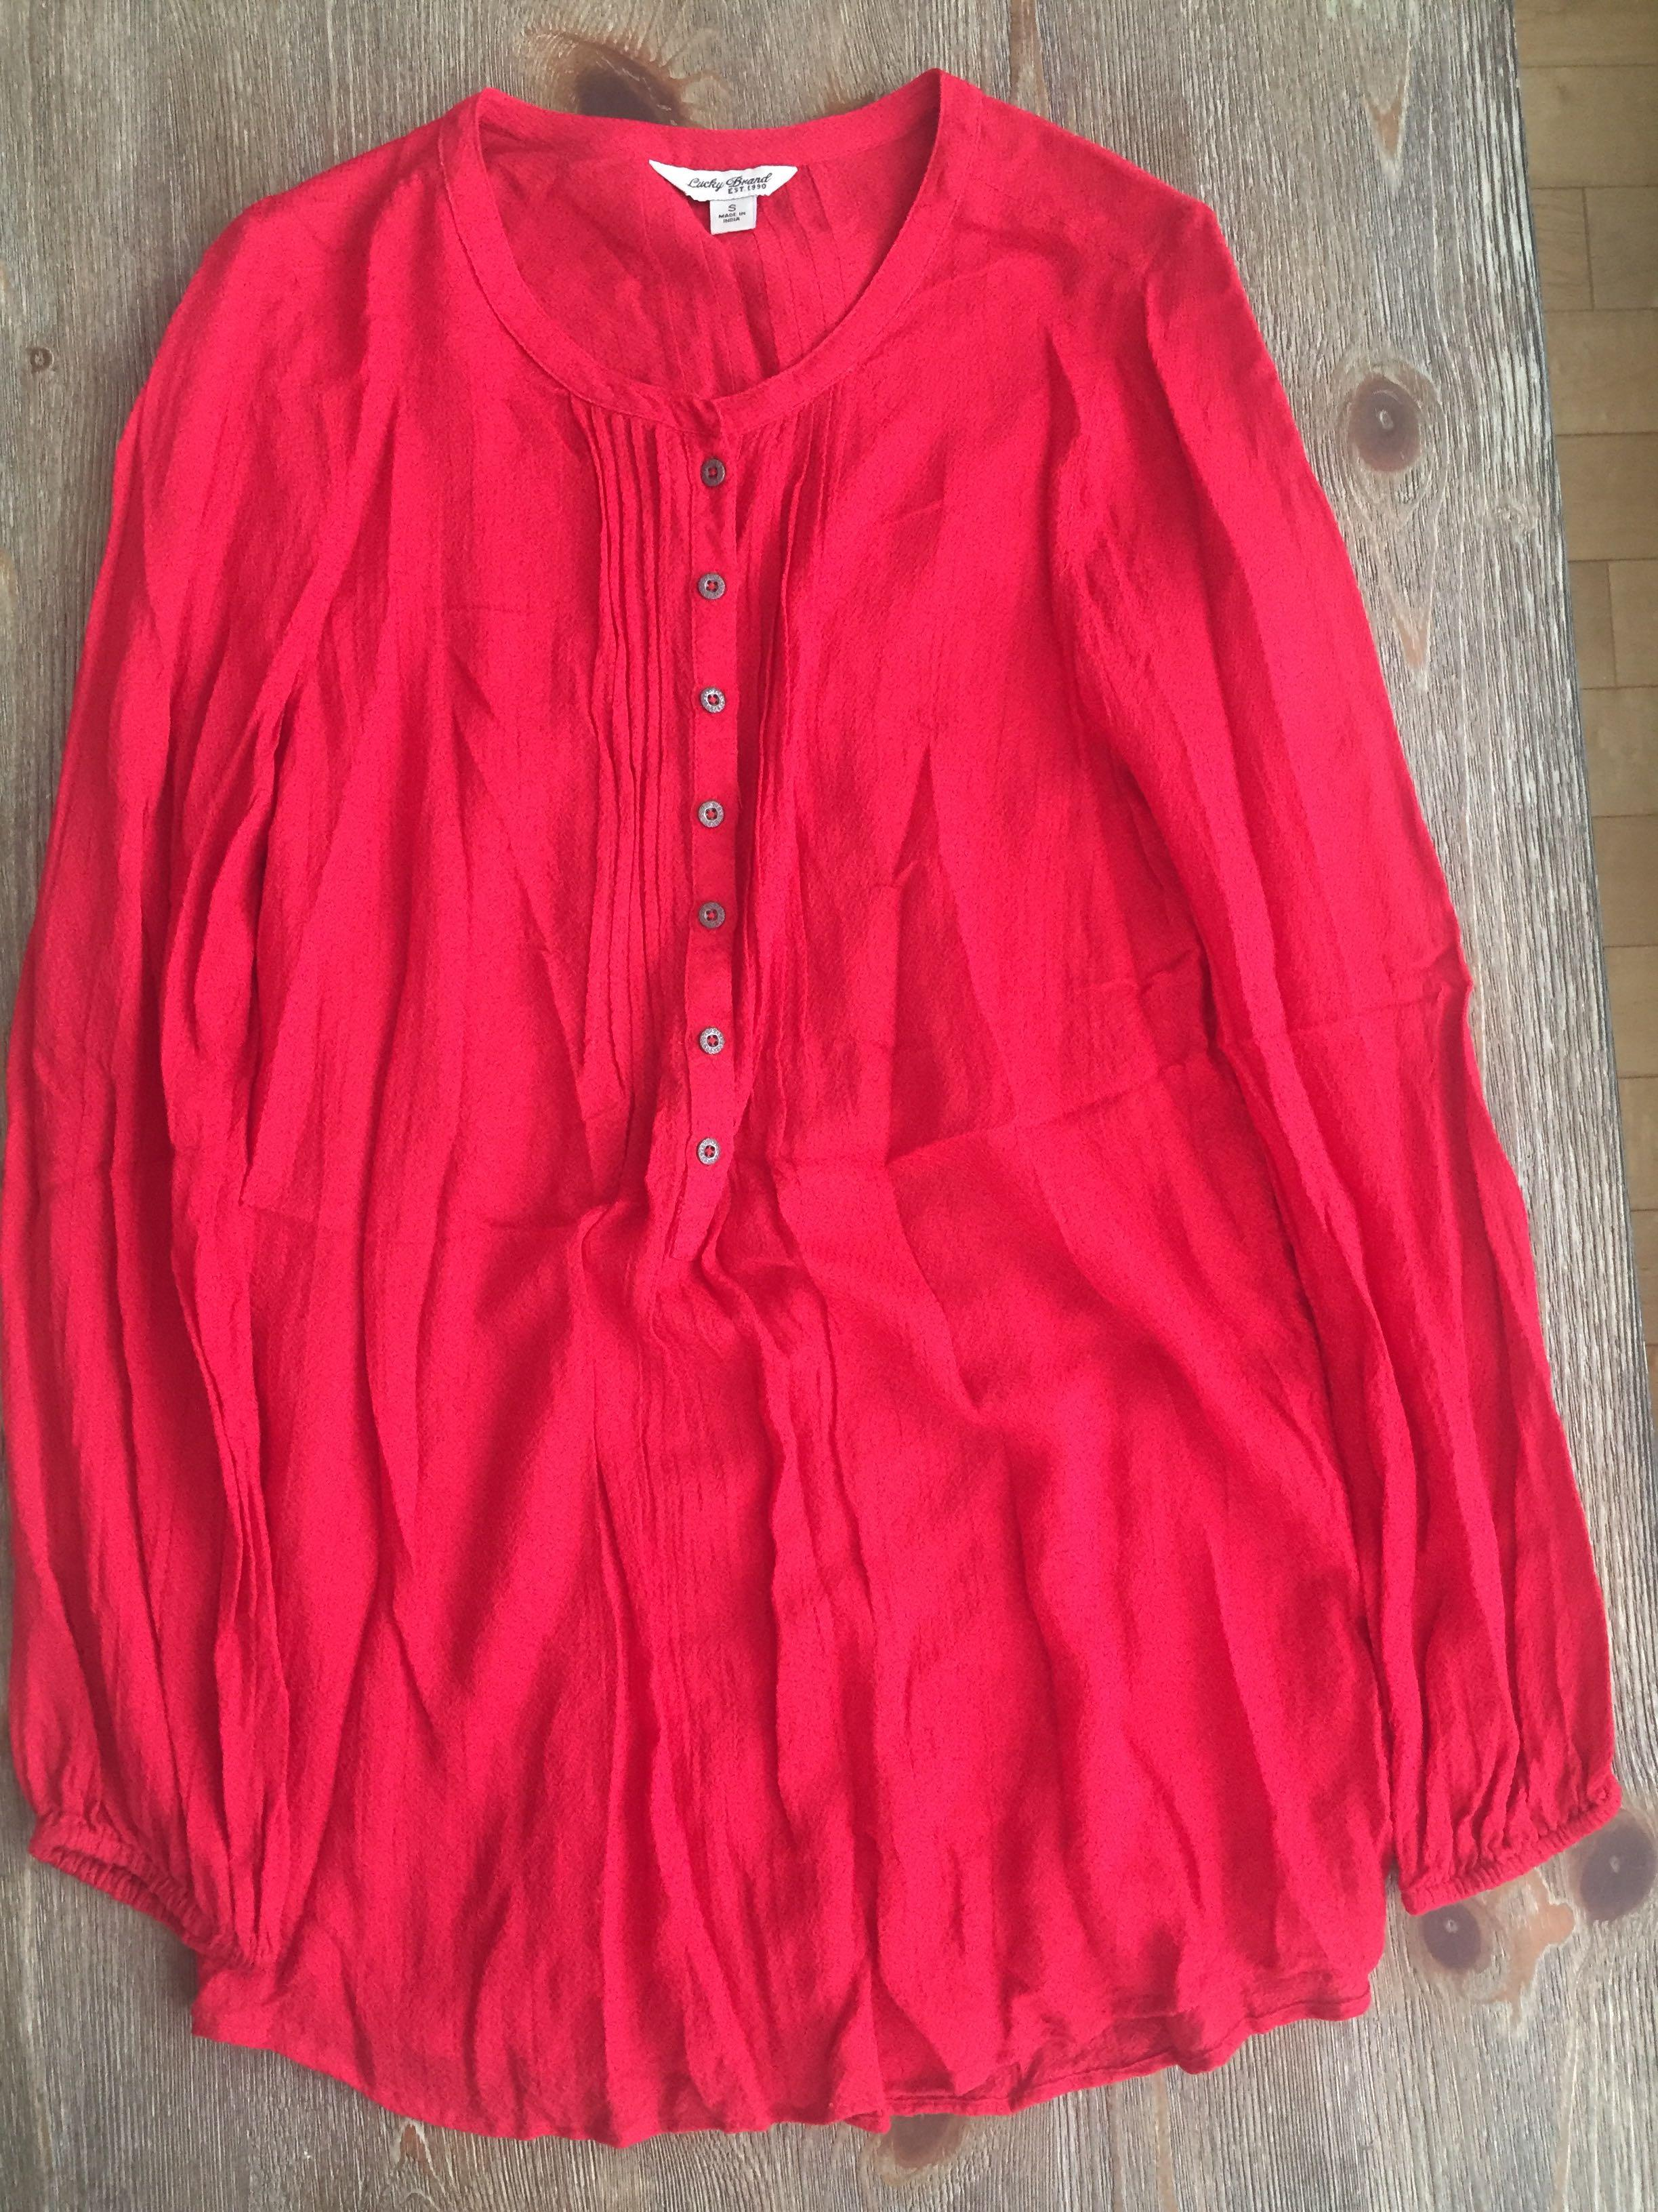 Lucky Brand Long-Sleeve Blouse (M/L)